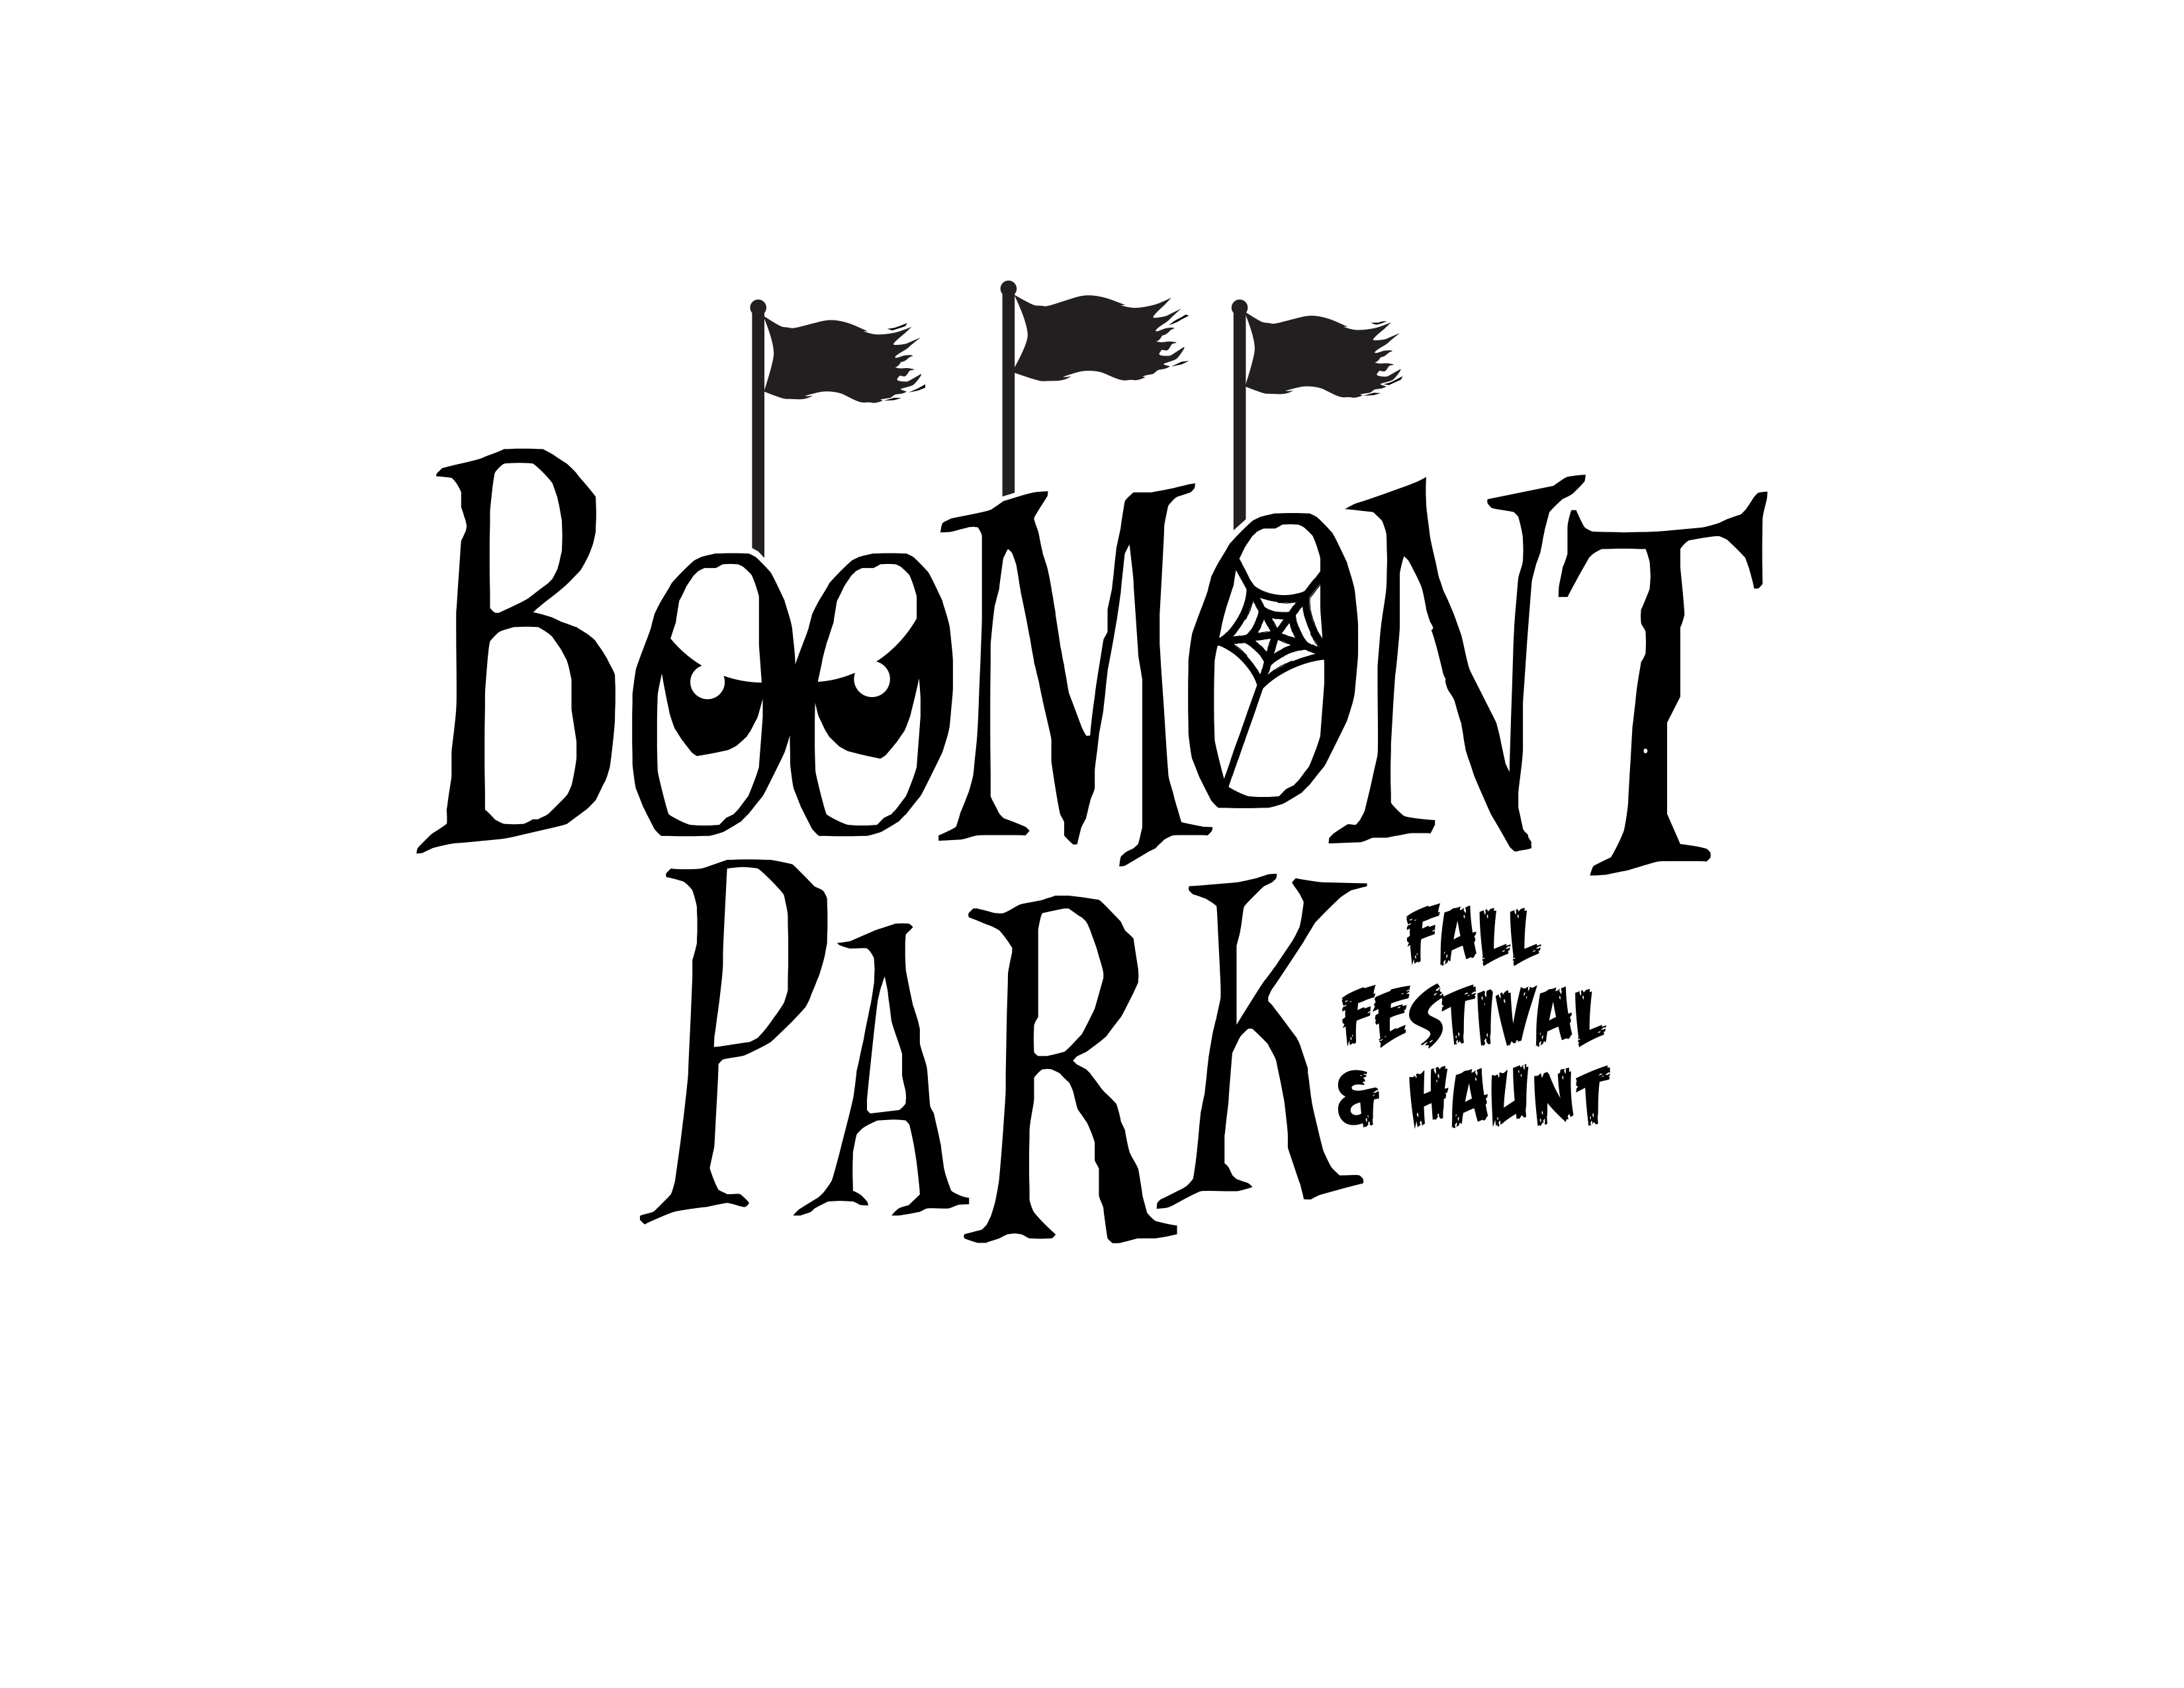 Giveaway To The Boomont Park Fall Festival And Haunt In